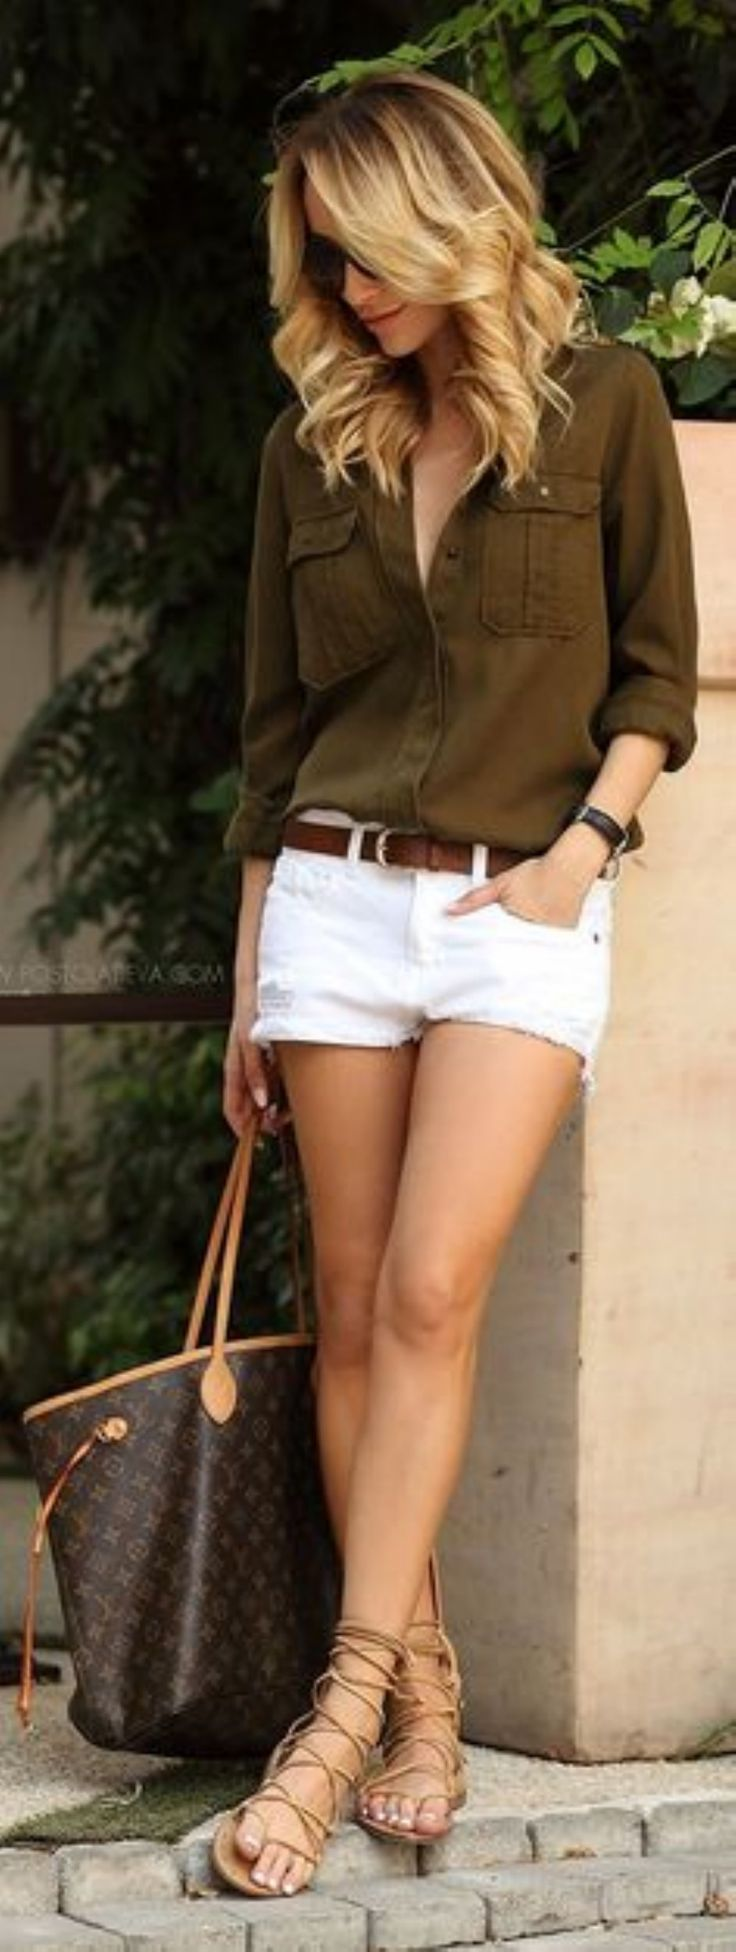 Gorgeous 99 Simple and Fashionable Style with White Shorts Outfit from https://www.fashionetter.com/2017/04/17/simple-fashionable-style-white-shorts-outfit/